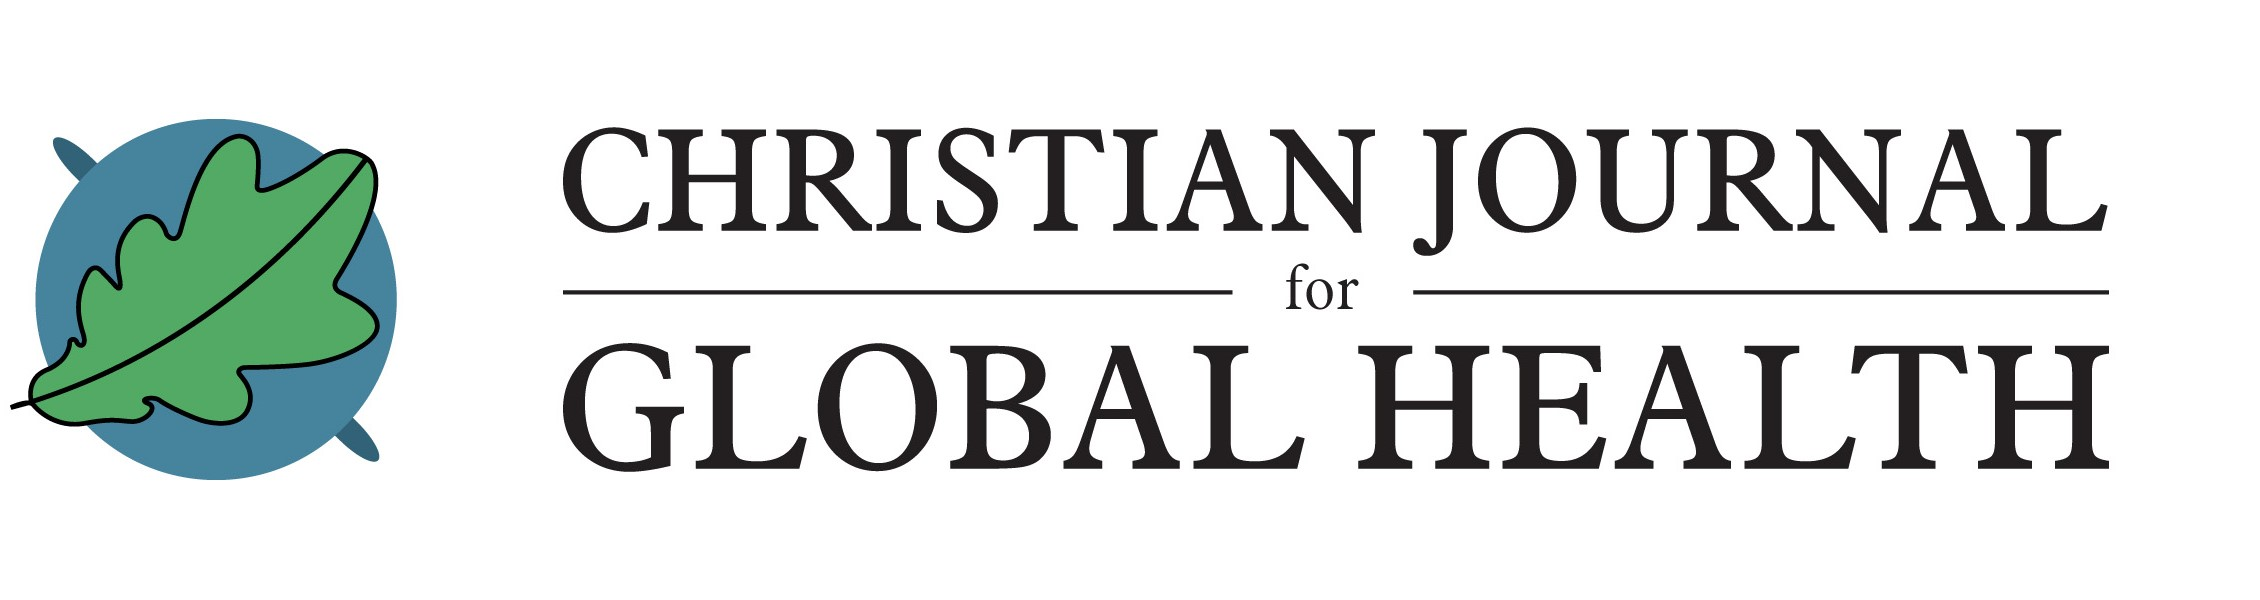 Christian Journal For Global Health